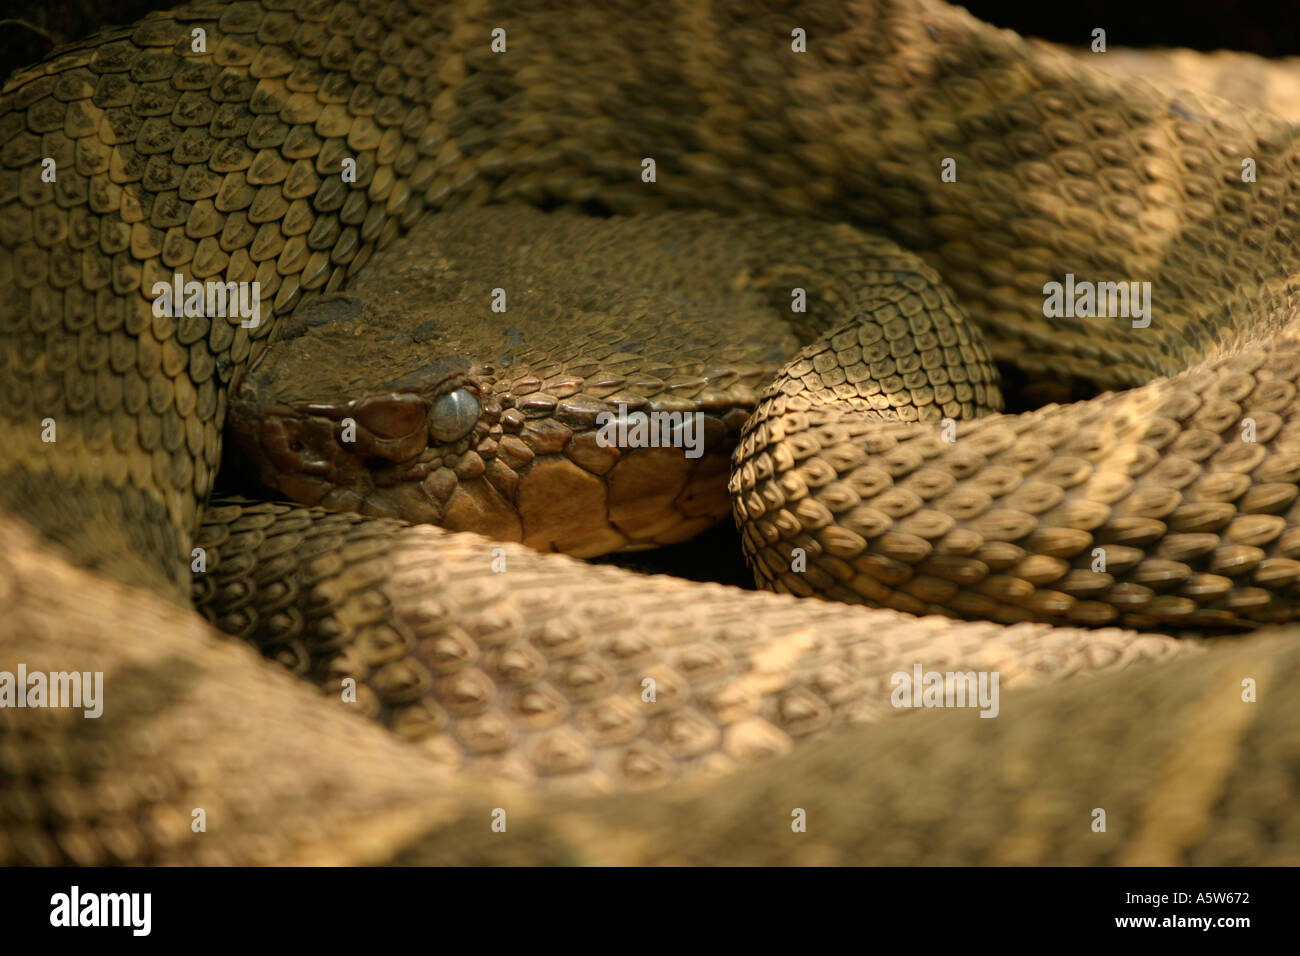 Deadliest Snakes  Most Venomous Snakes  Live Science